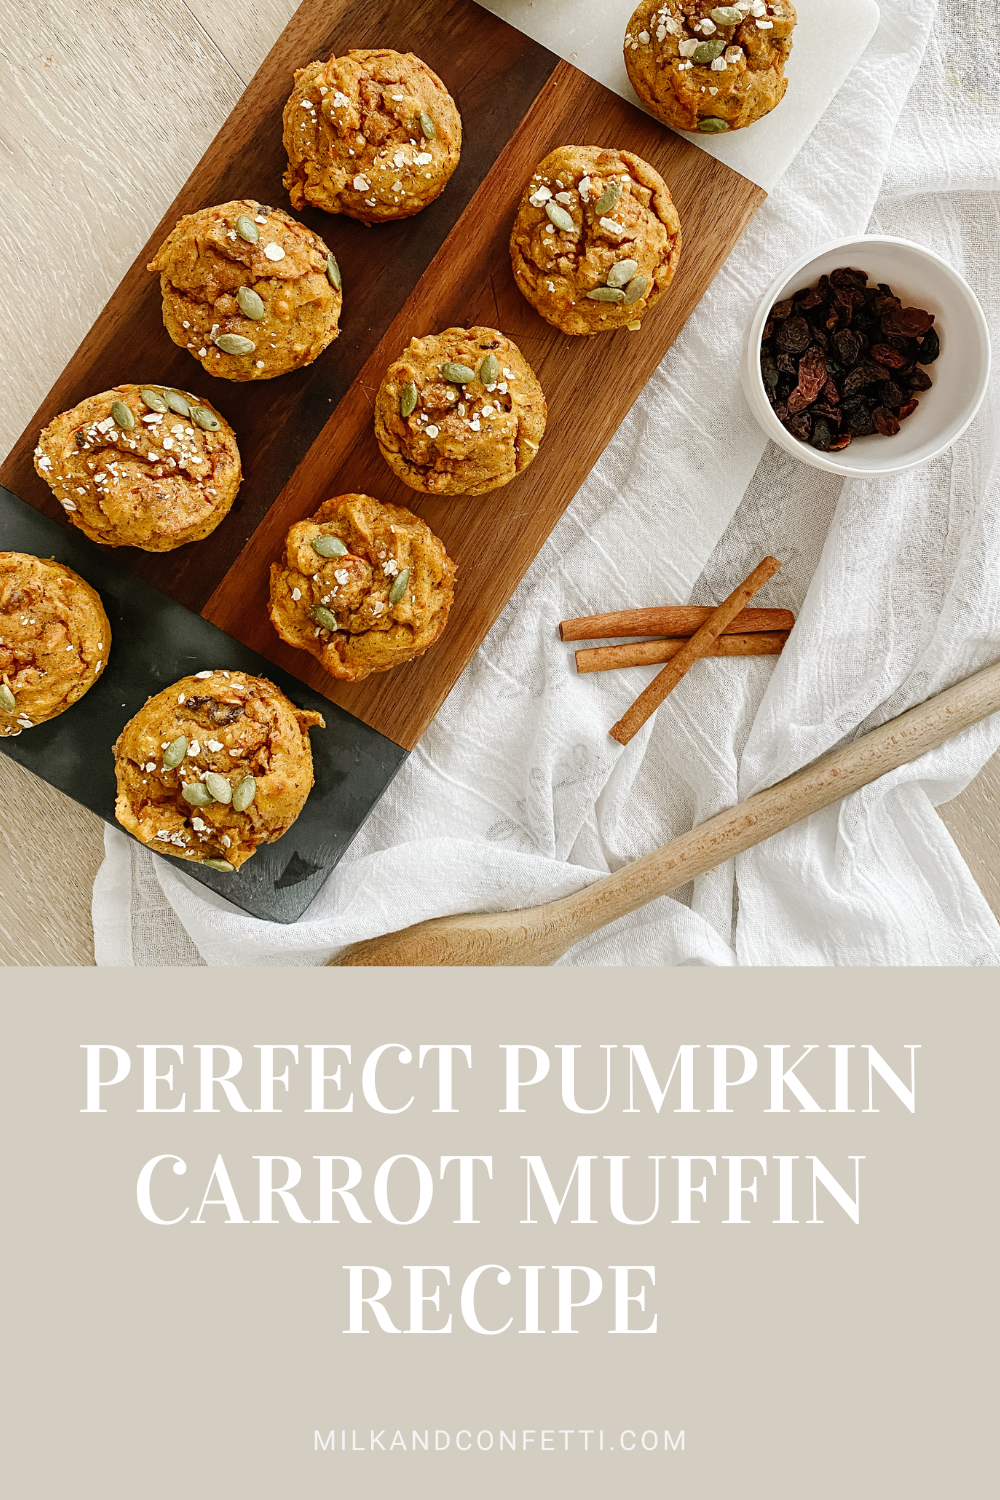 A wooden platter on a white table cloth shows off pumpkin and nut muffins beside cinnamon sticks, a bowl of raisins and a wooden spoon.